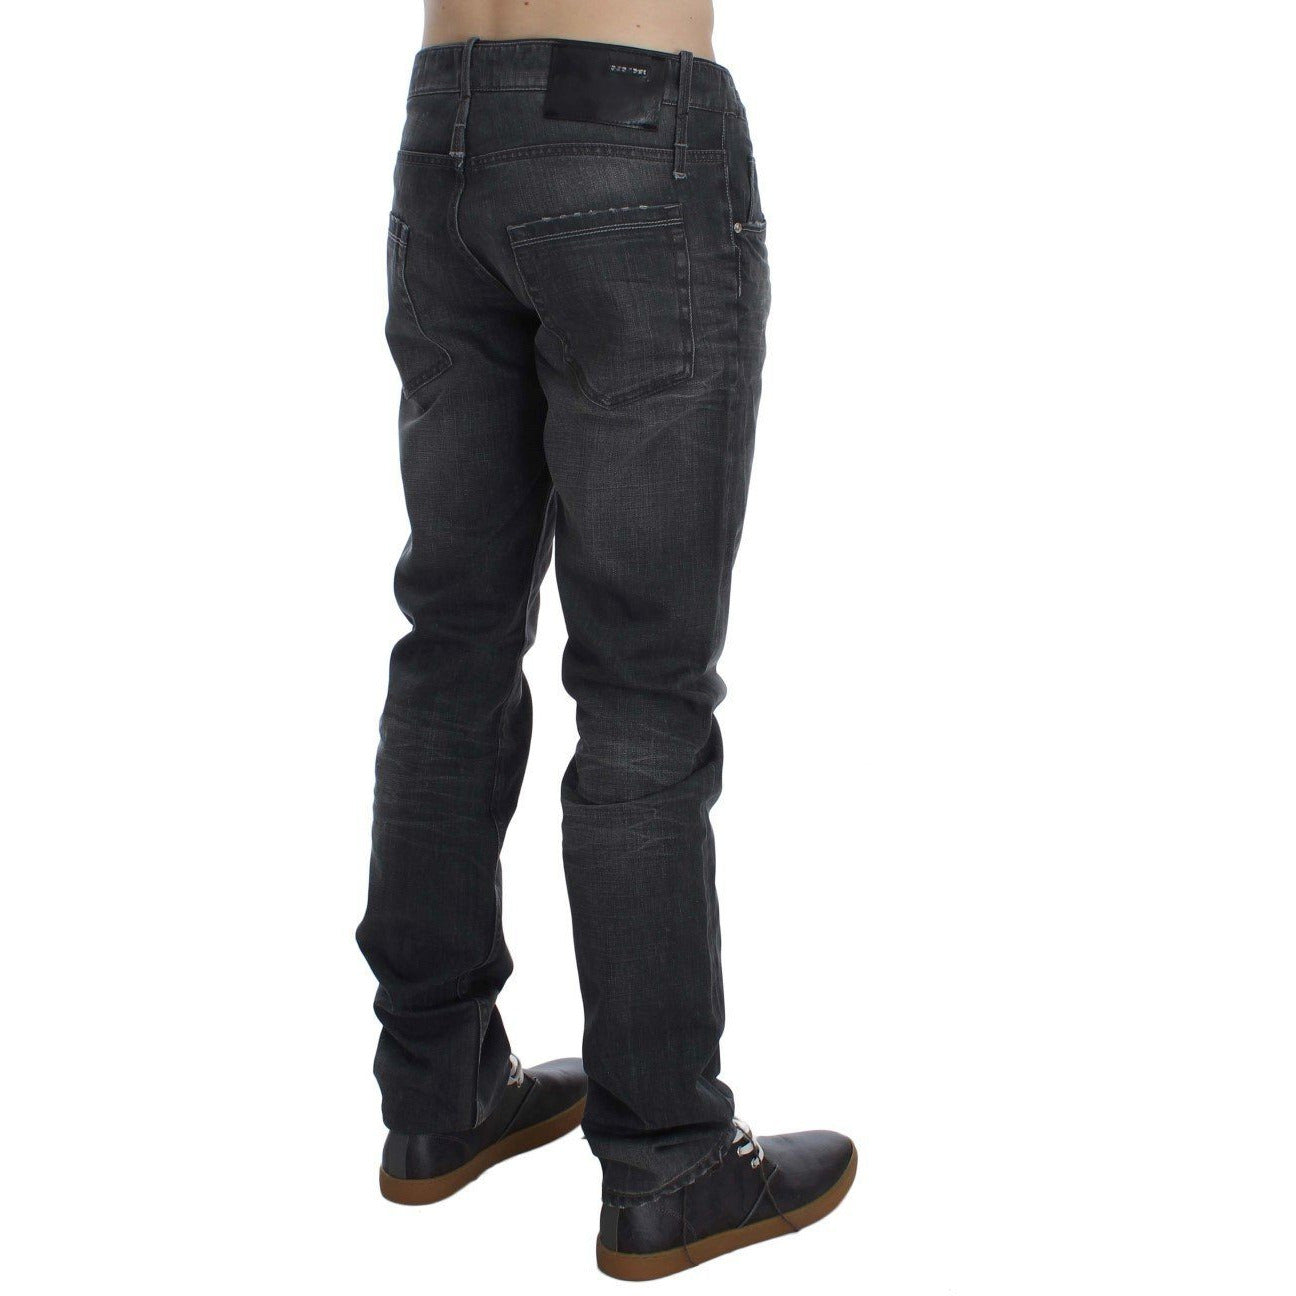 Gray Cotton Regular Low Fit Jeans ACHT